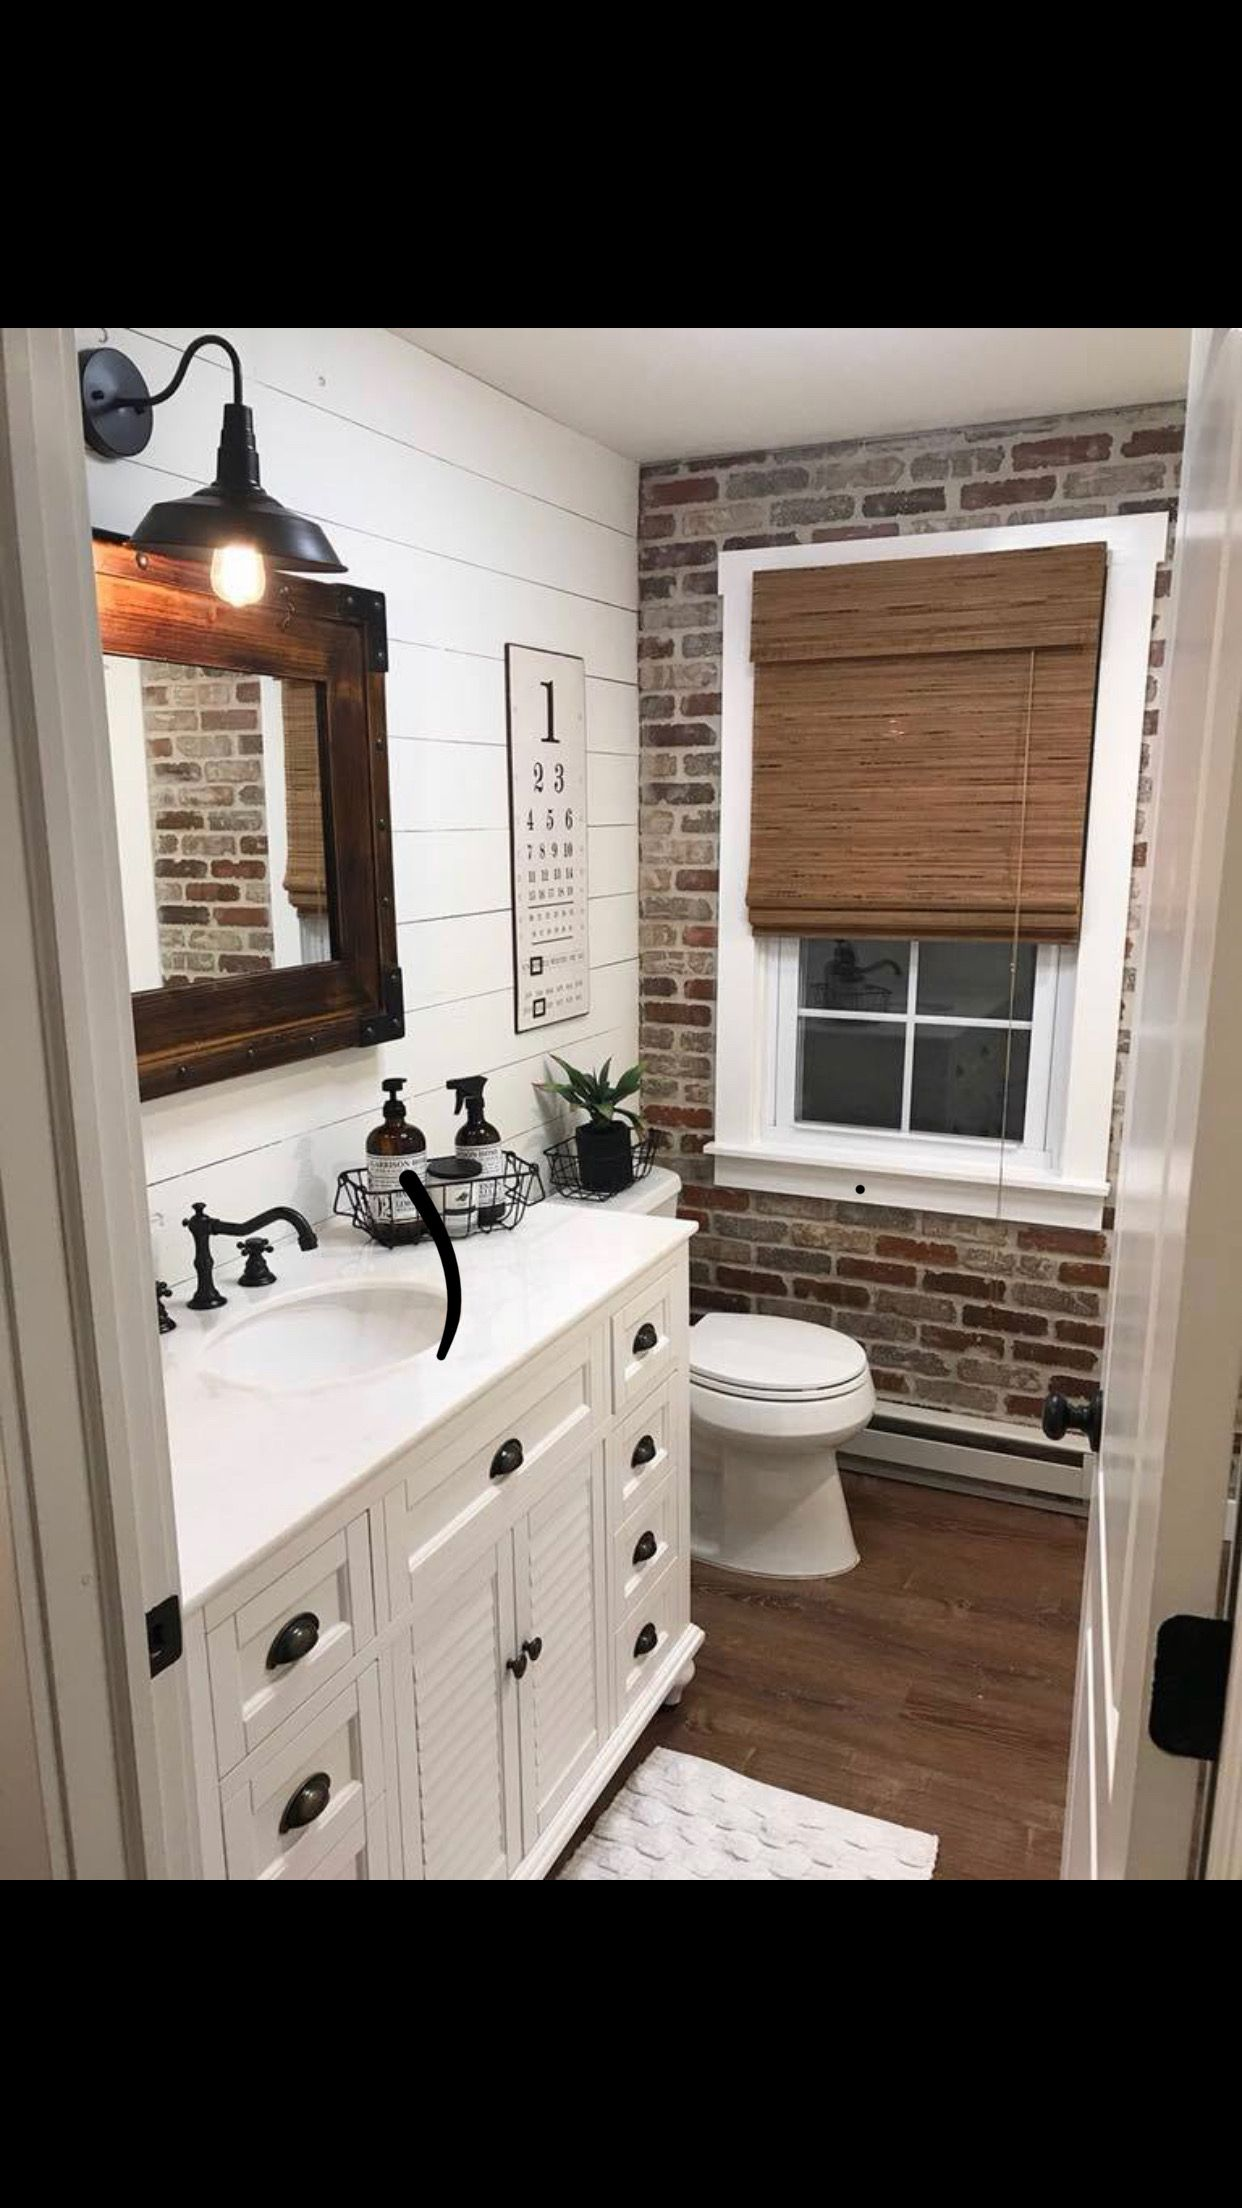 The Exposed Brick Is A Nice Contrast In This Half Bath